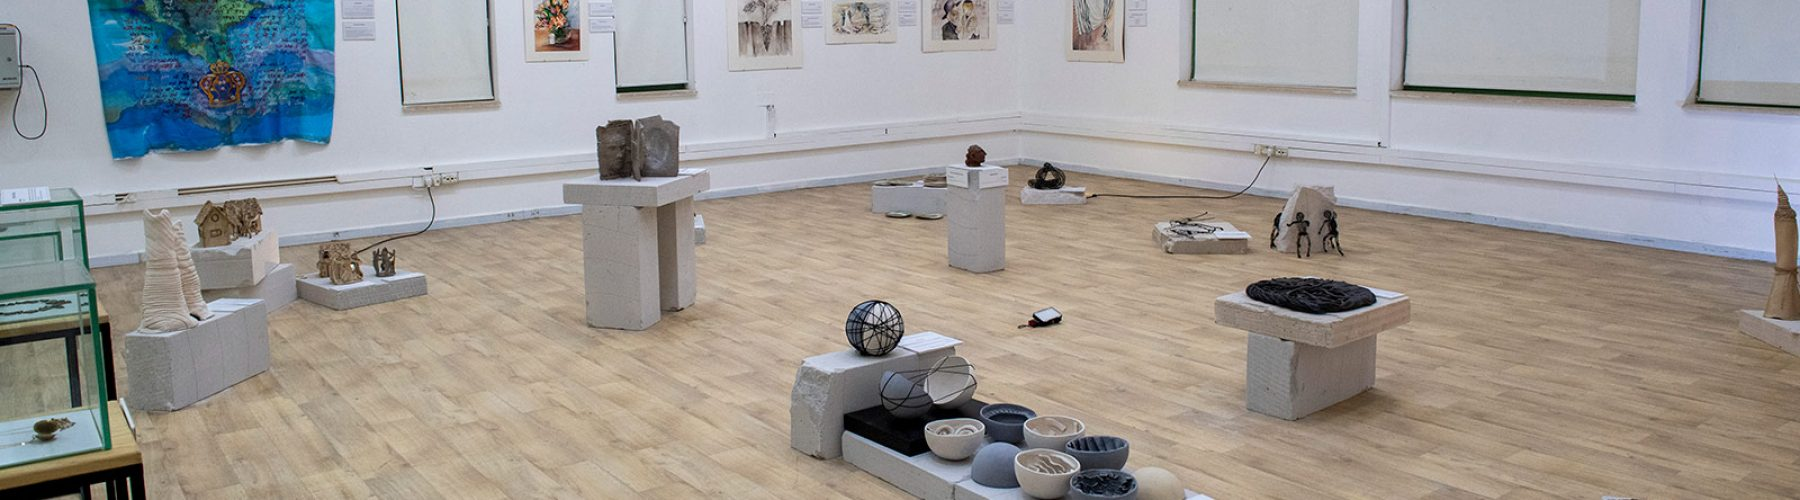 The-Power-of-Time-Exhibition-space4